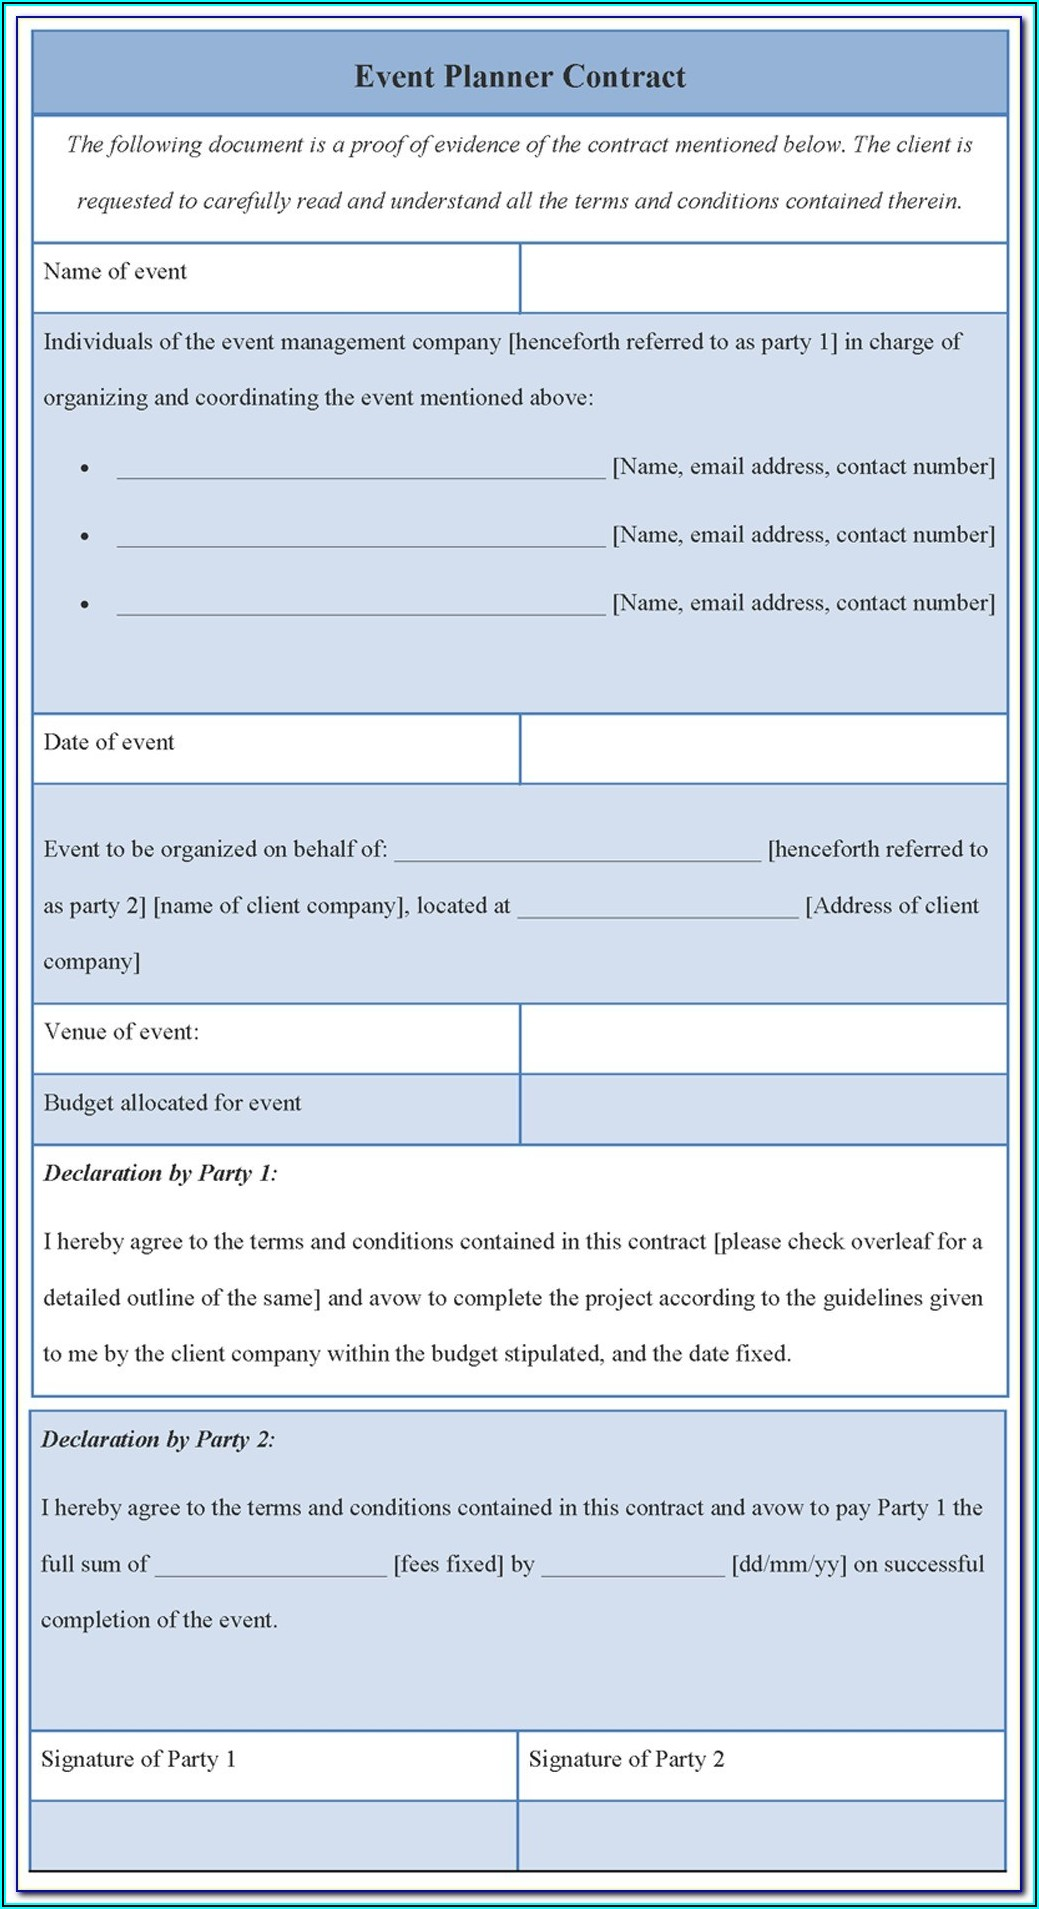 Event Planning Contract Examples